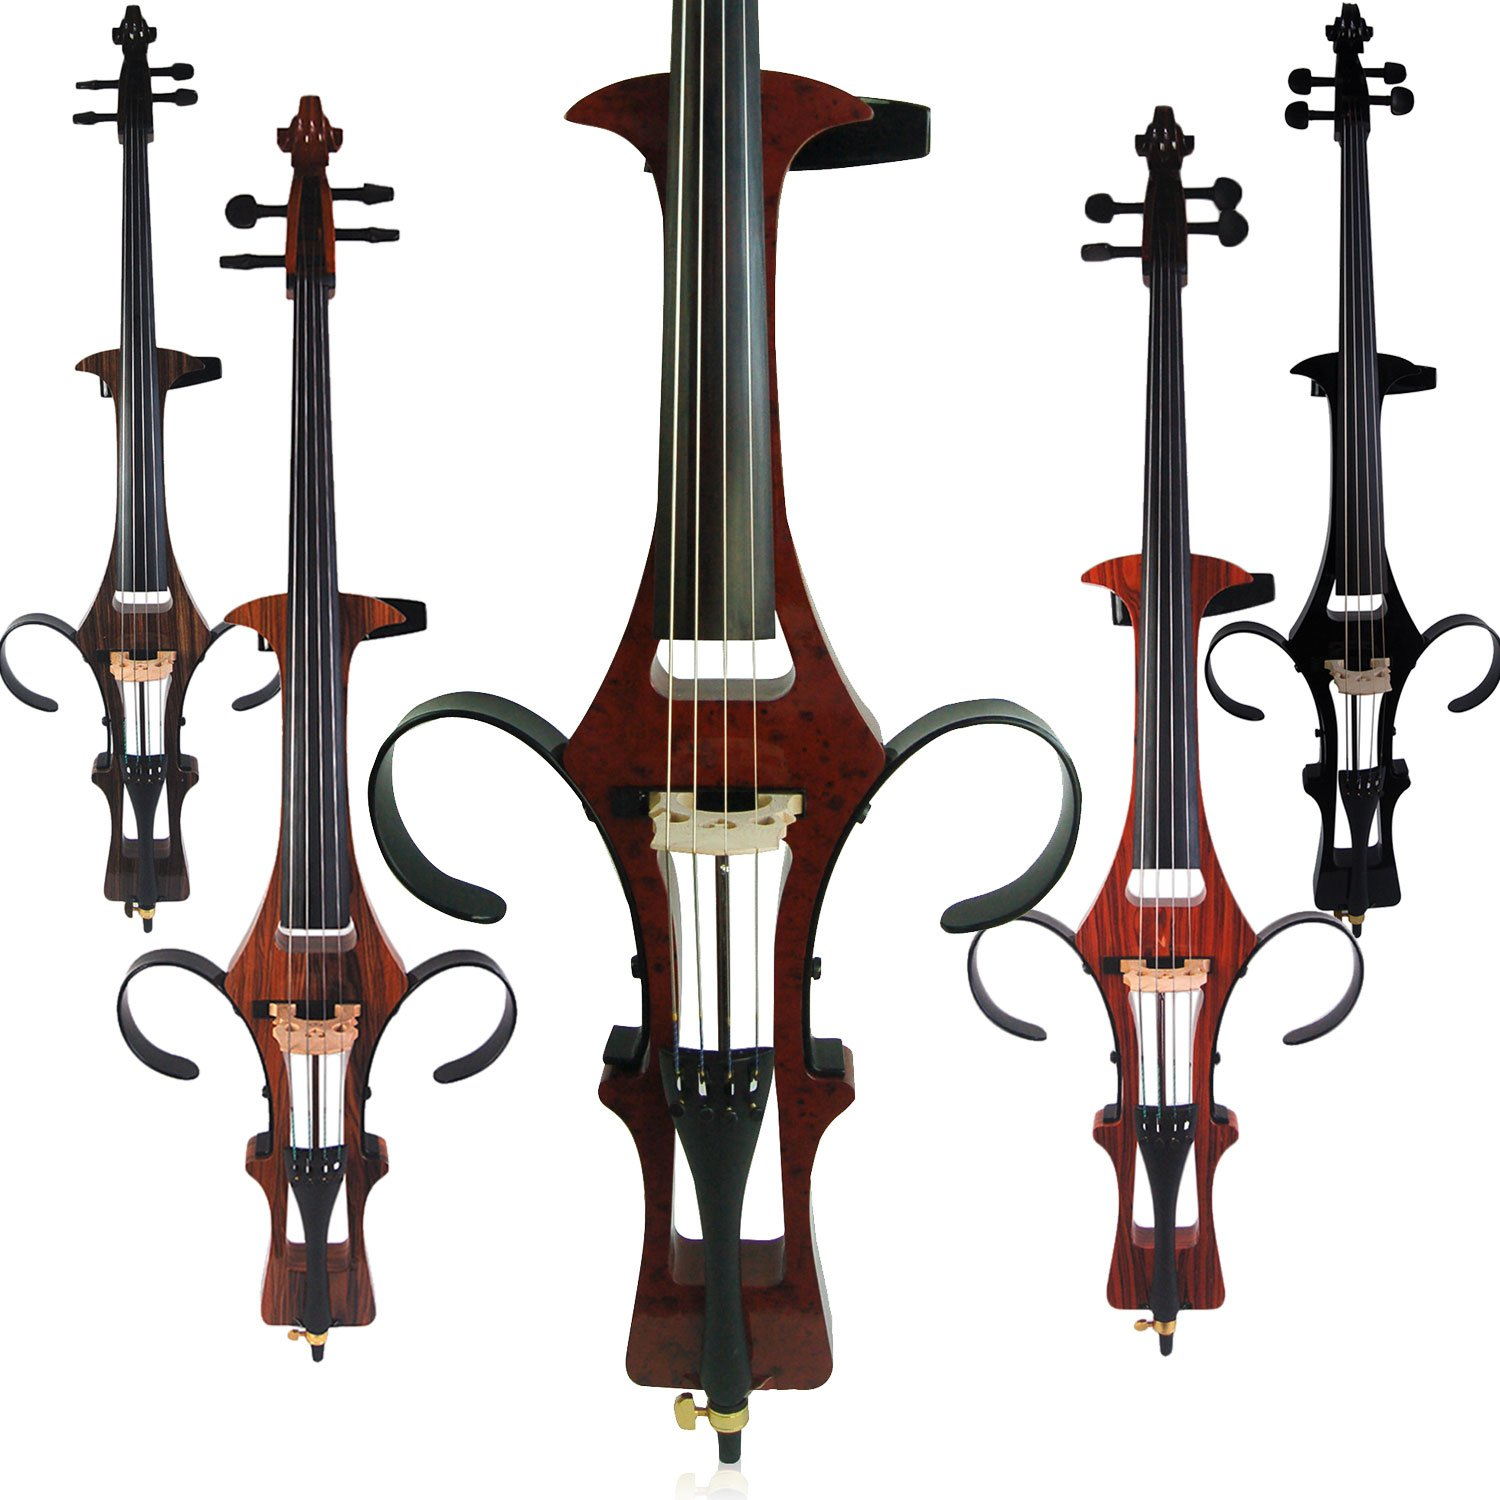 Aliyes Handmade Professional Solid Wood Electric Cello 4/4 Full Size Silent Electric Cello-Soul by Aliyes